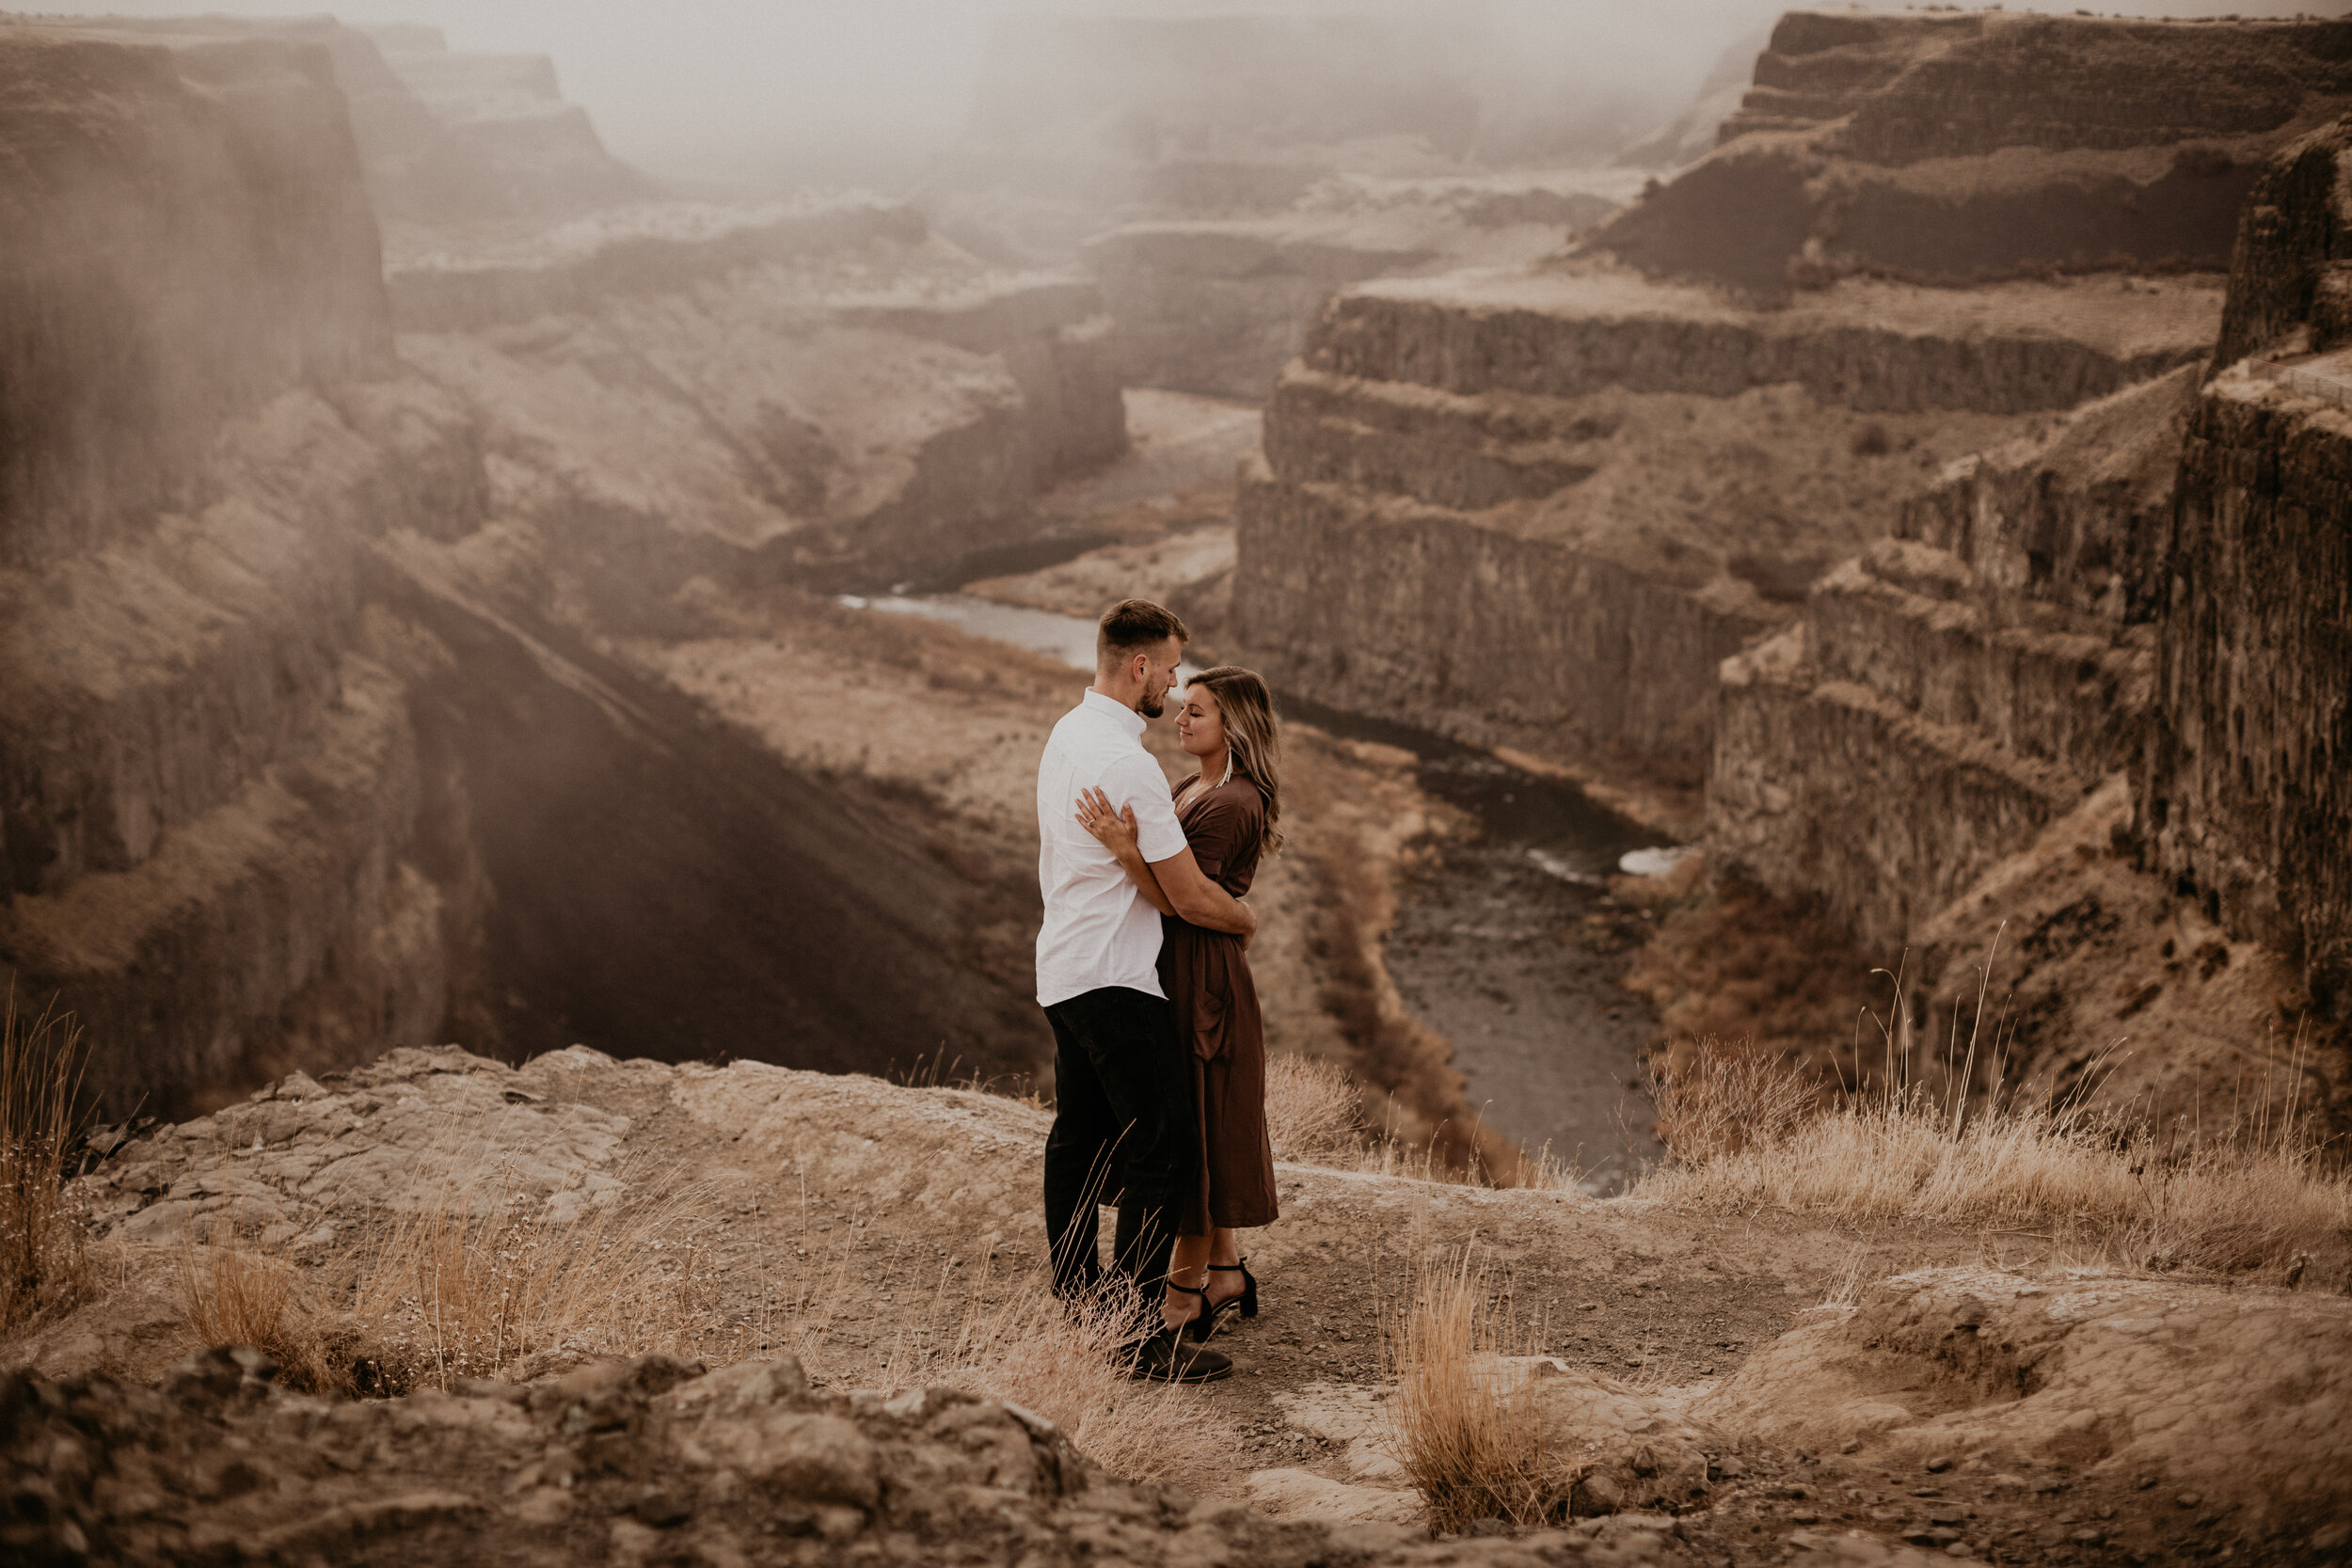 MARCUS + JESSICA: A LOVE STORY - sunrise proposal | antelope, orengagement adventure | washtucna, wawedding day | spokane, waSEE FOR YOURSELF